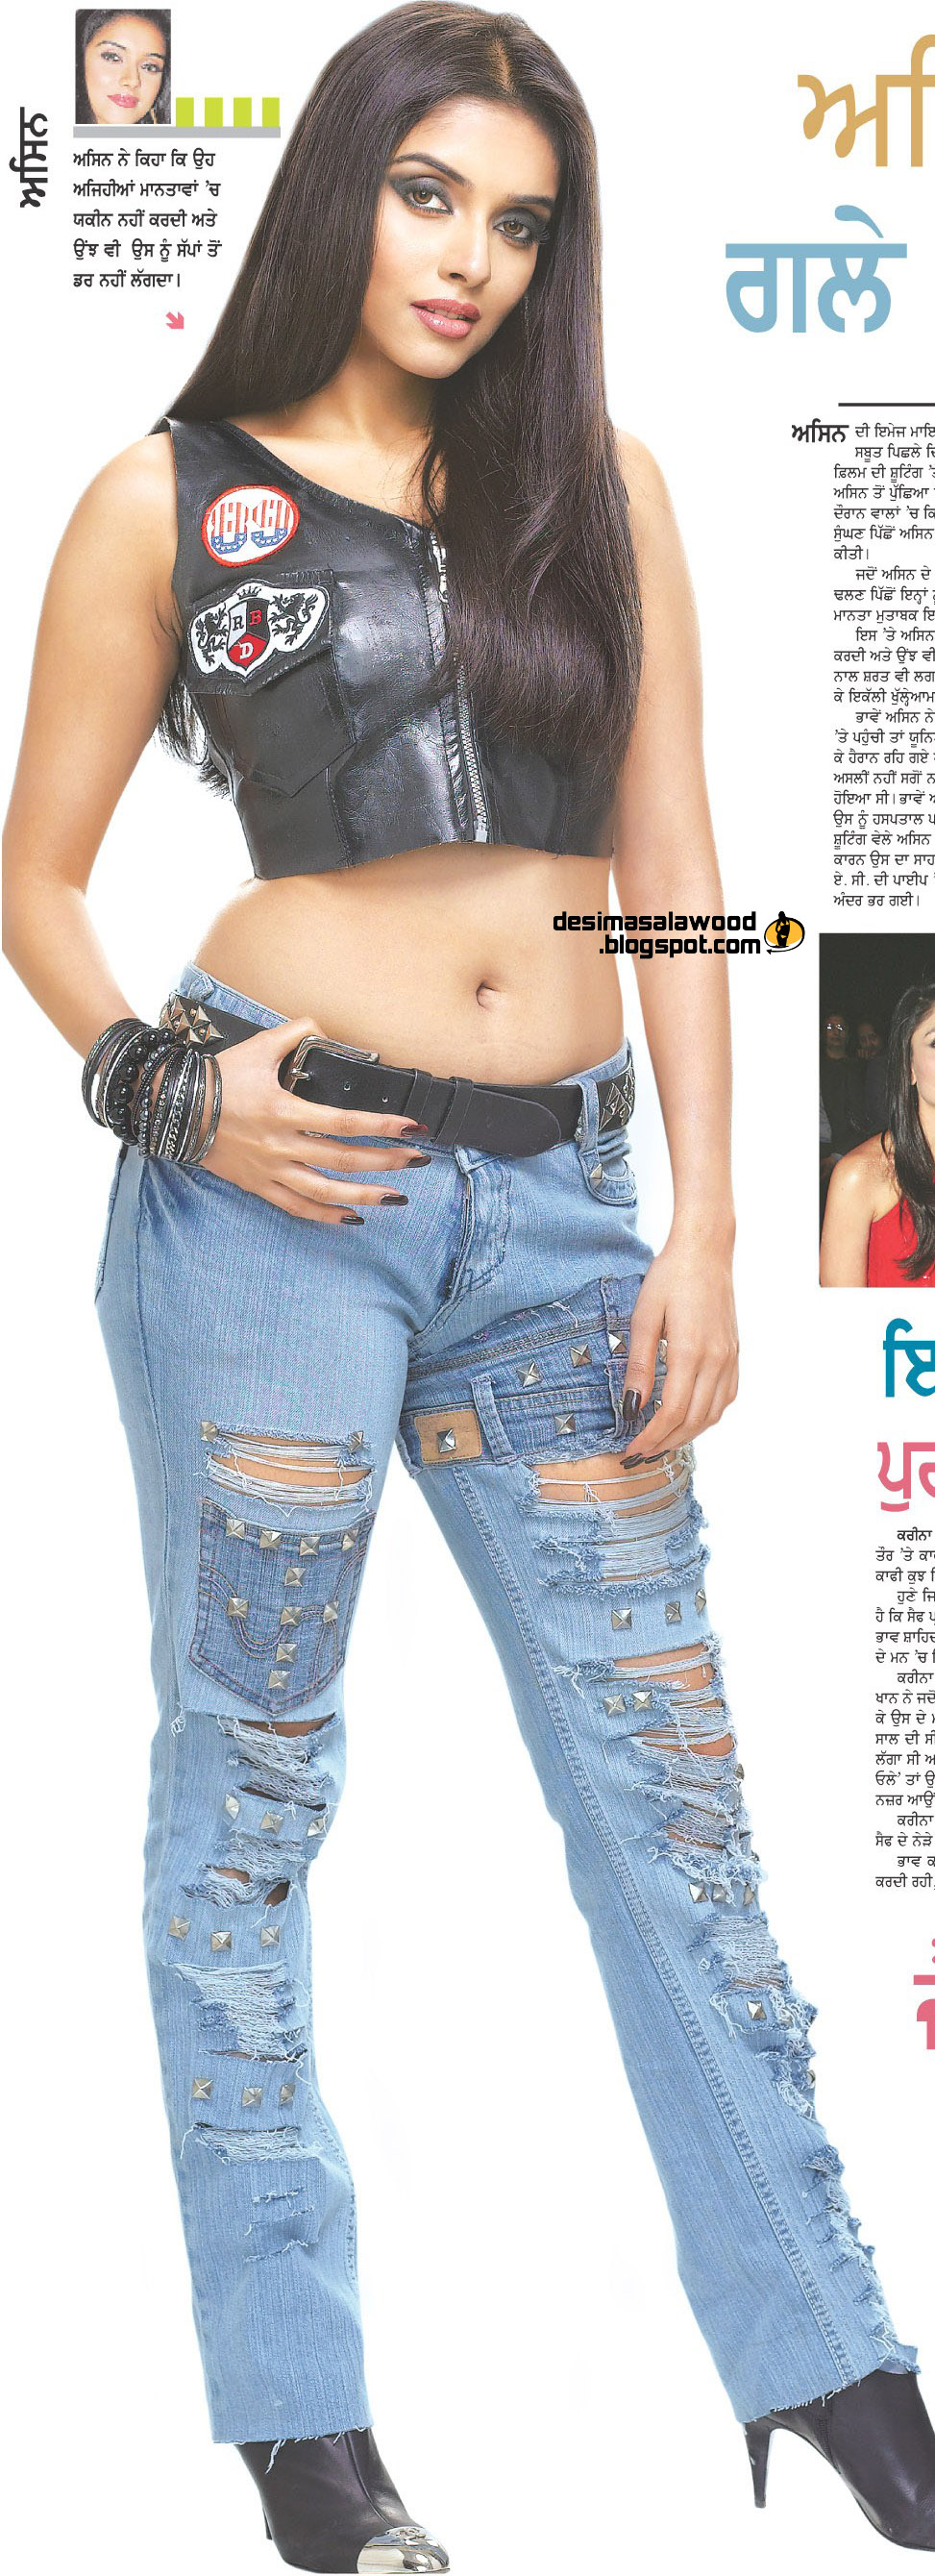 Actress Asin in hot pose with tare jean